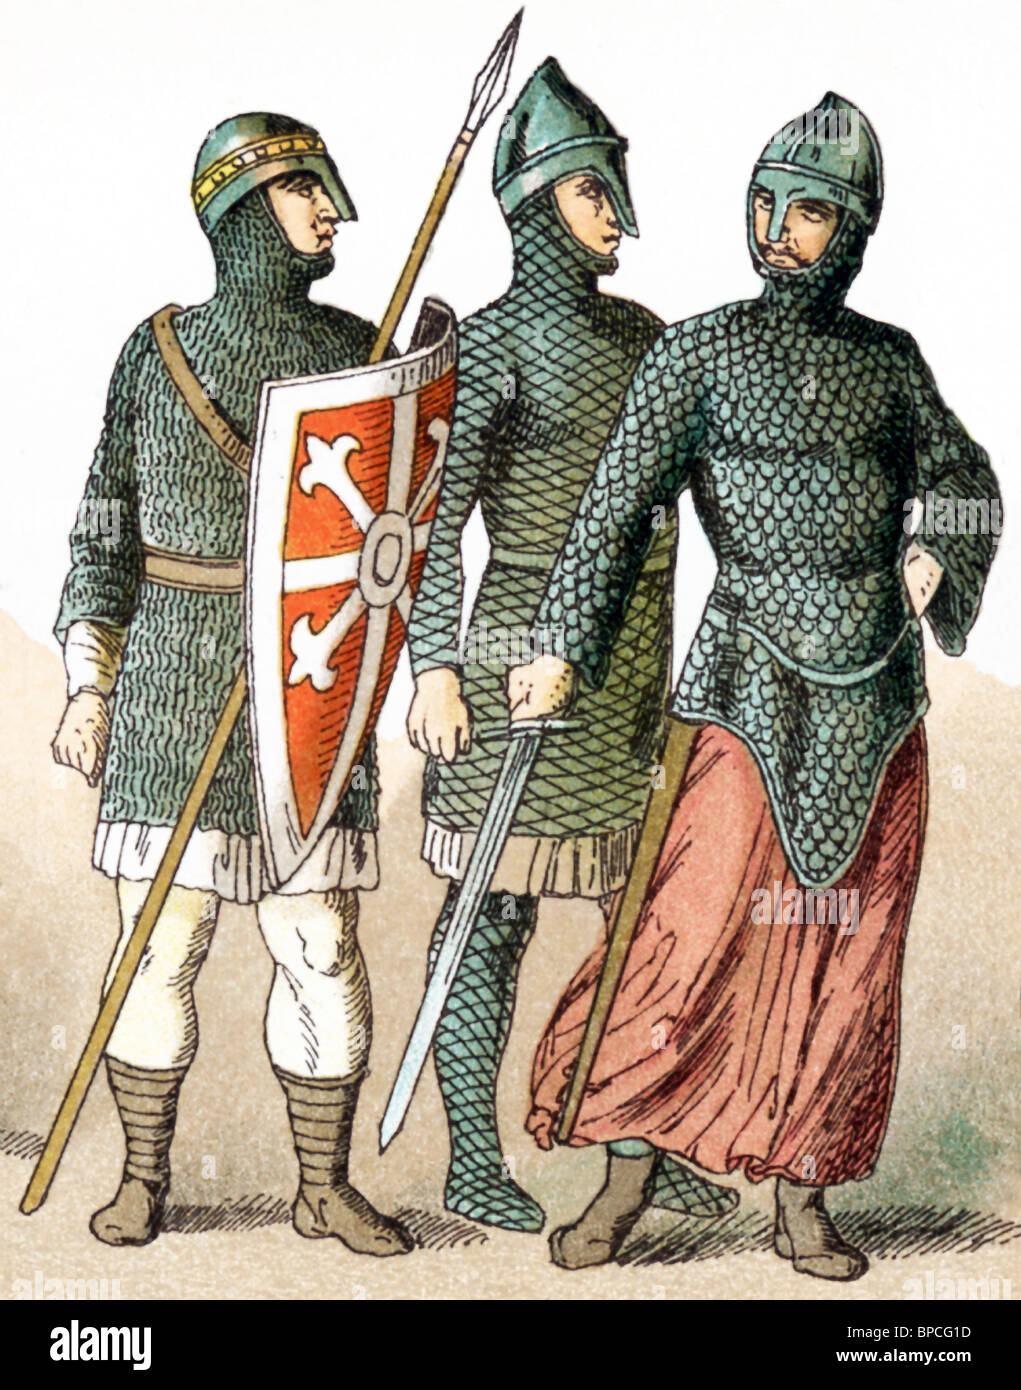 The figures represented here are Norman warriors between A.D. 1000 and 1100. Stock Photo